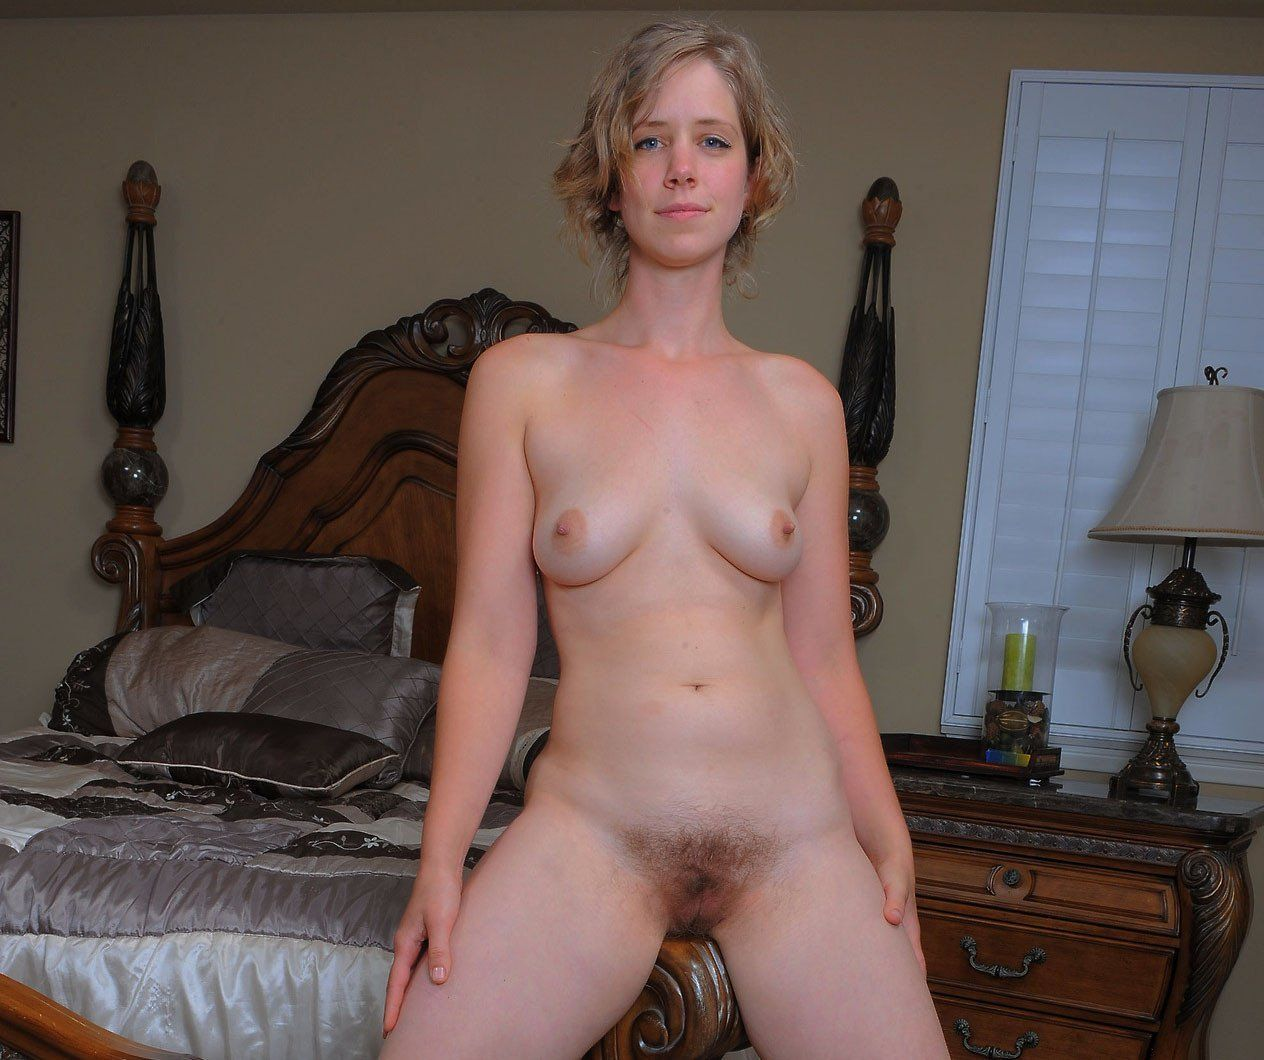 Wife poses album naked